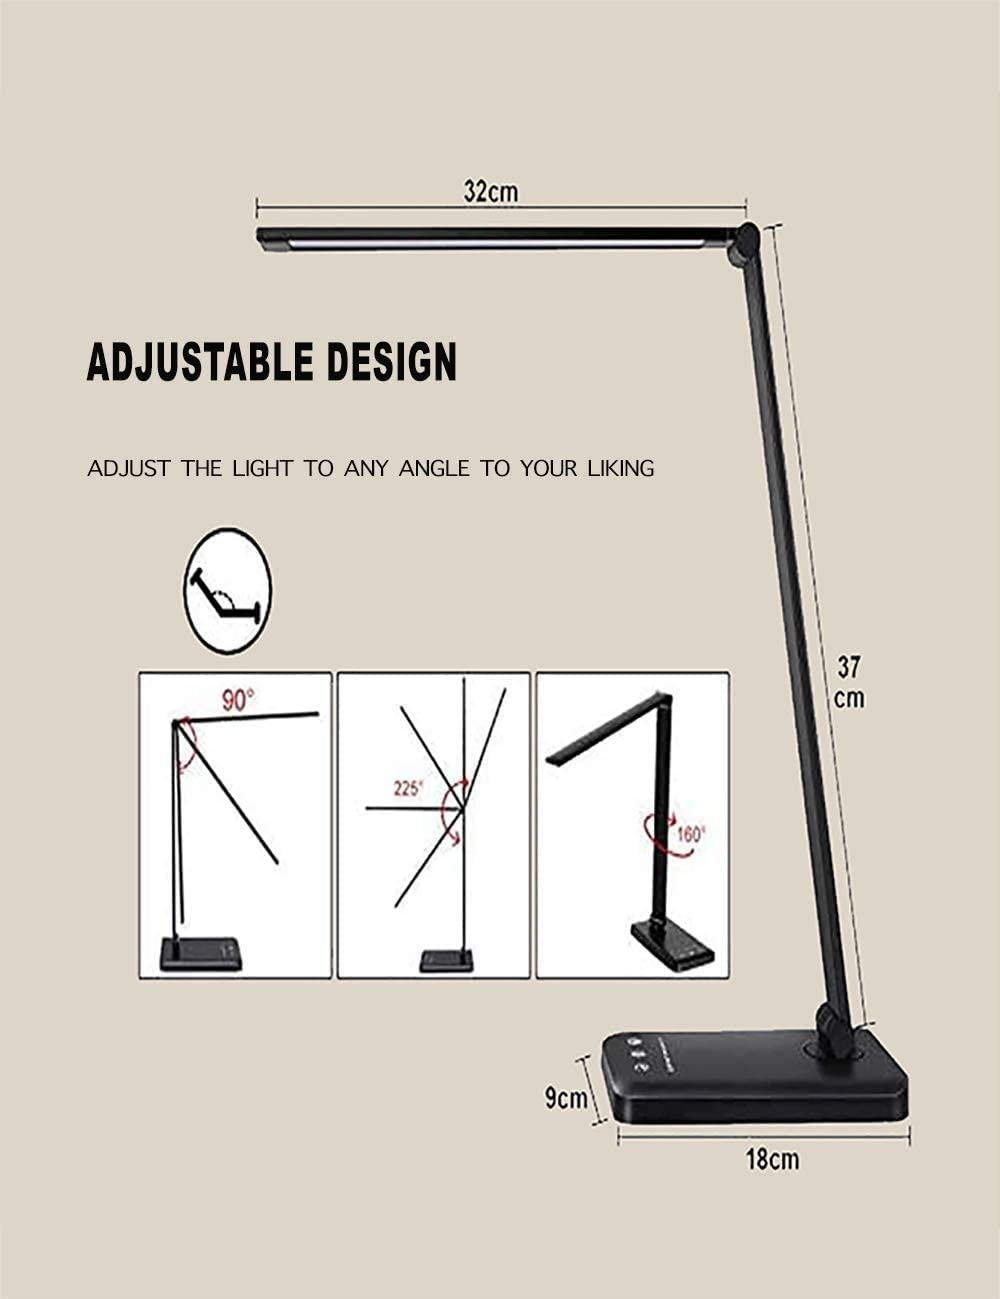 Timer Function LED Desk Lamp Black Eye-Caring Table Lamp with USB Charging Port Touch Control School Office Use Memory Function for Home 5 Lighting Modes with 10 Brightness Levels